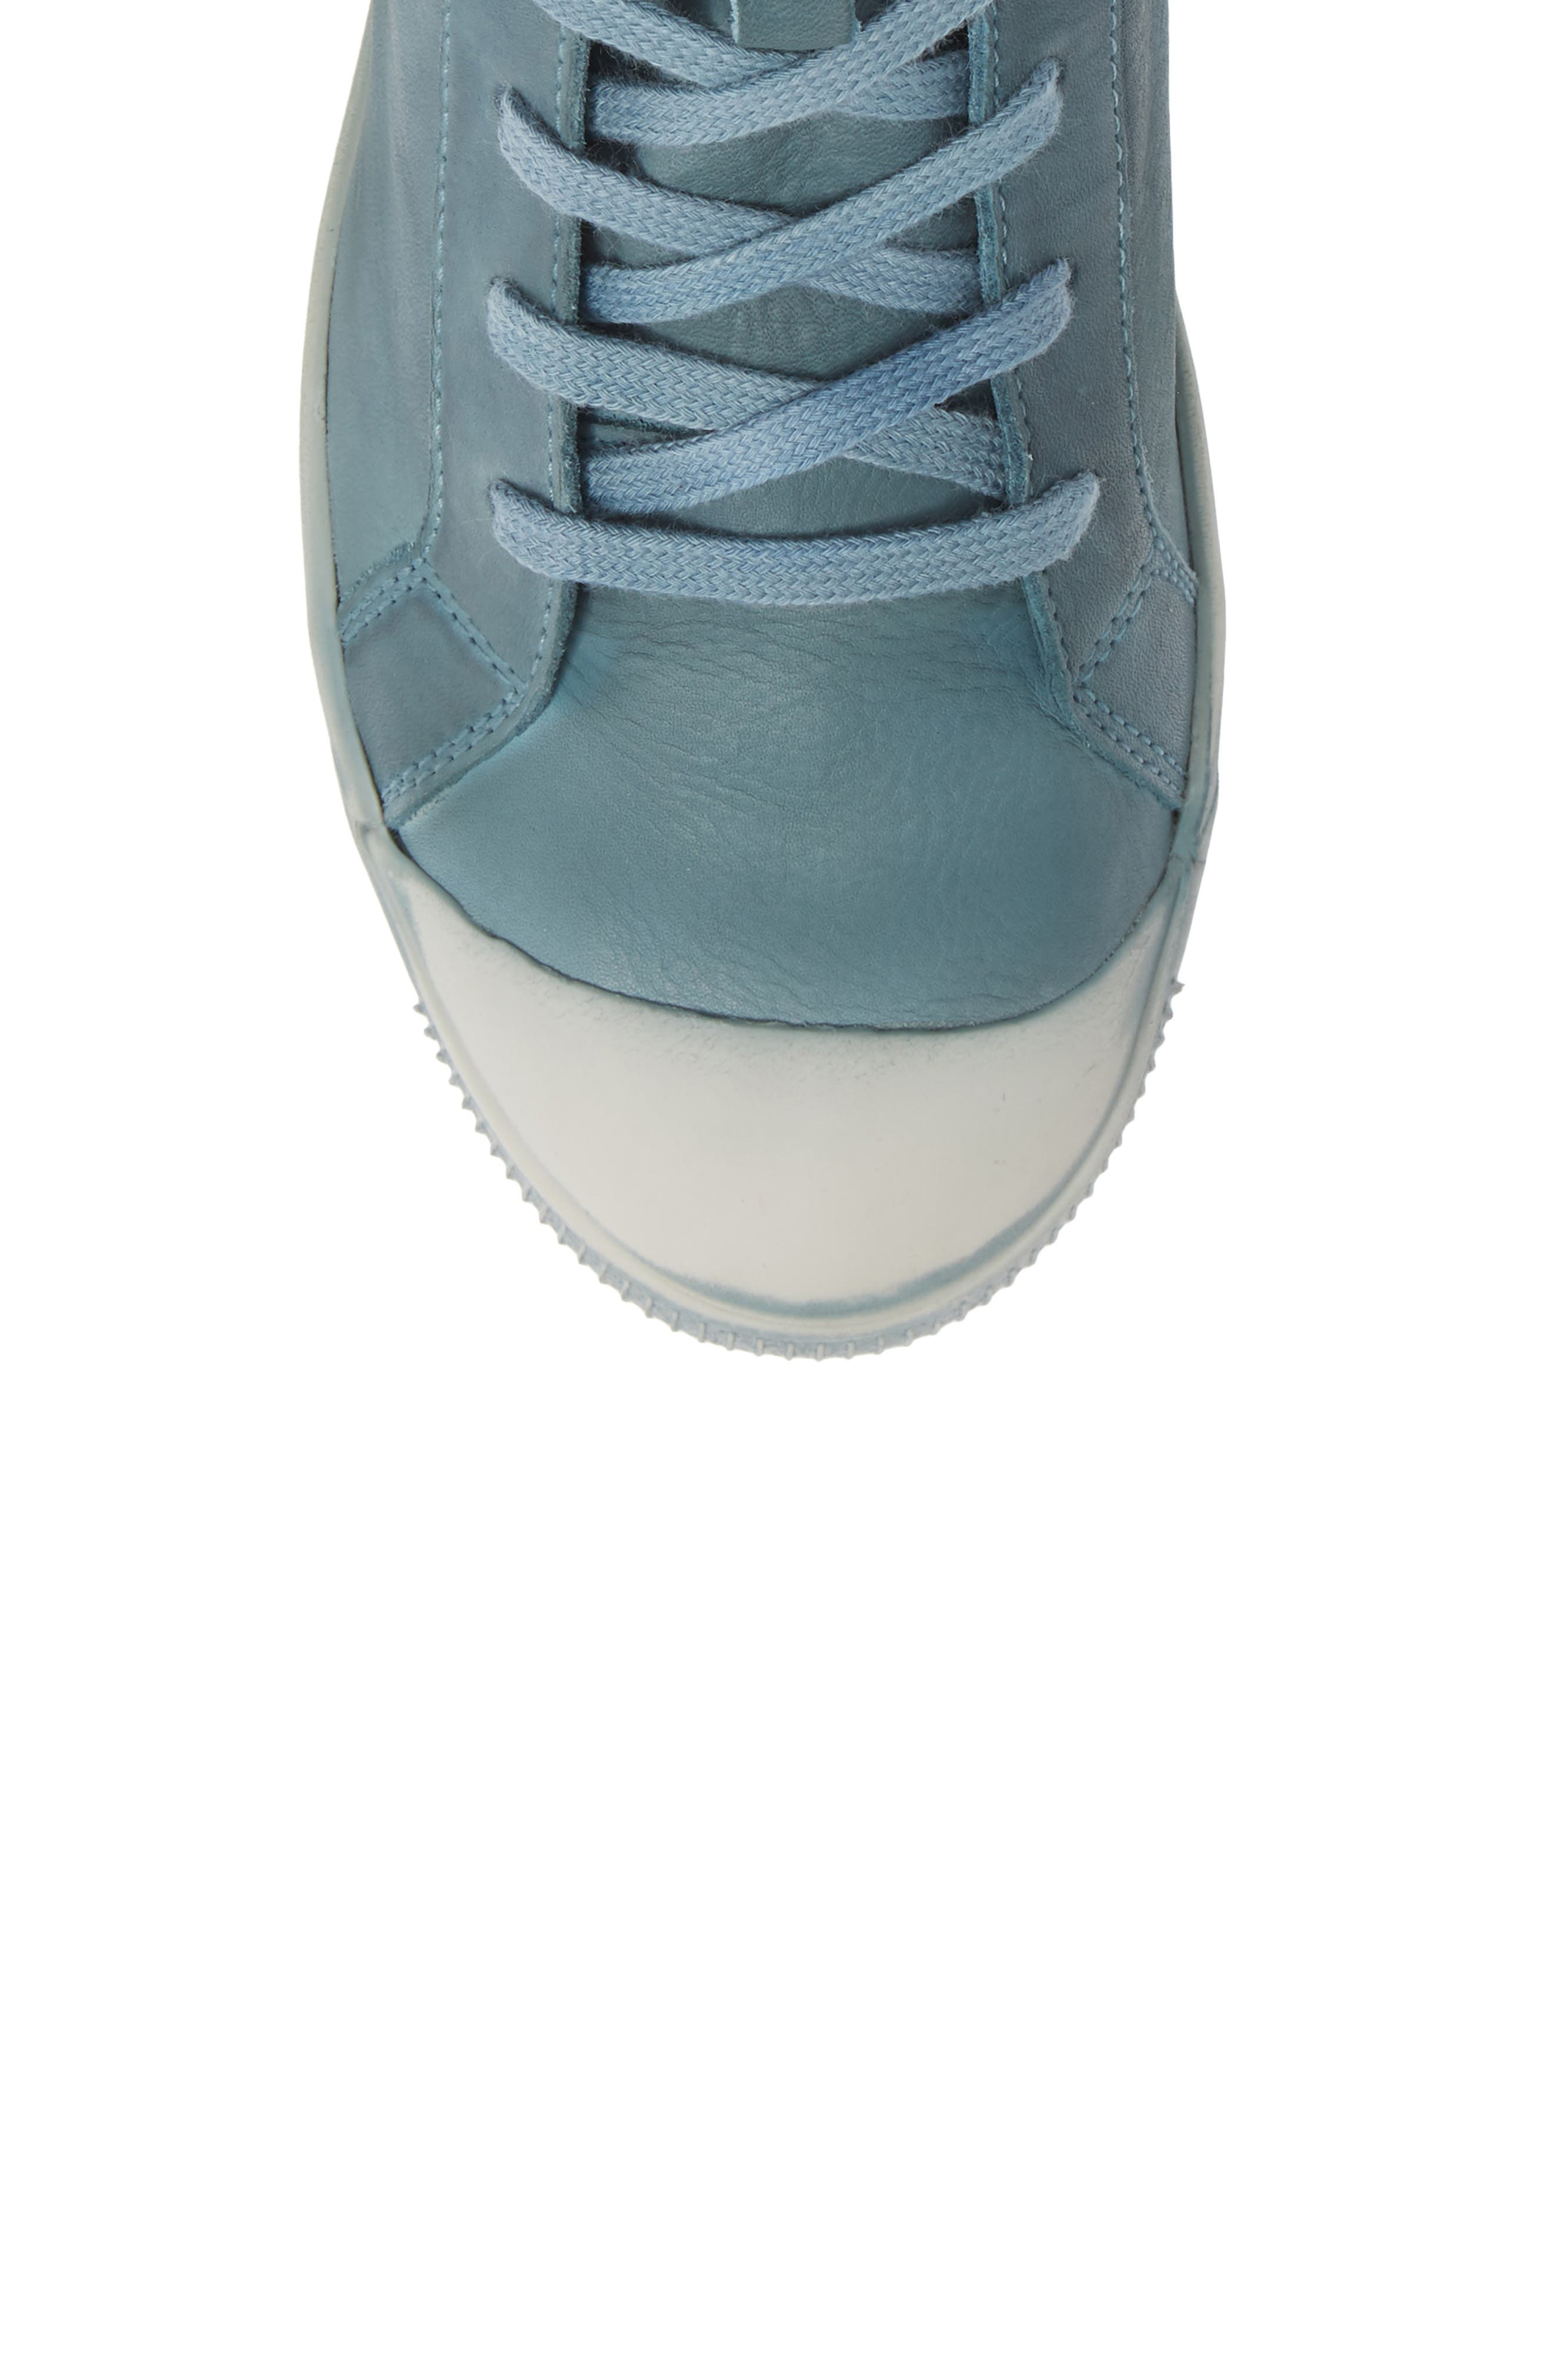 Kip High Top Sneaker,                             Alternate thumbnail 5, color,                             NUDE BLUE WASHED LEATHER